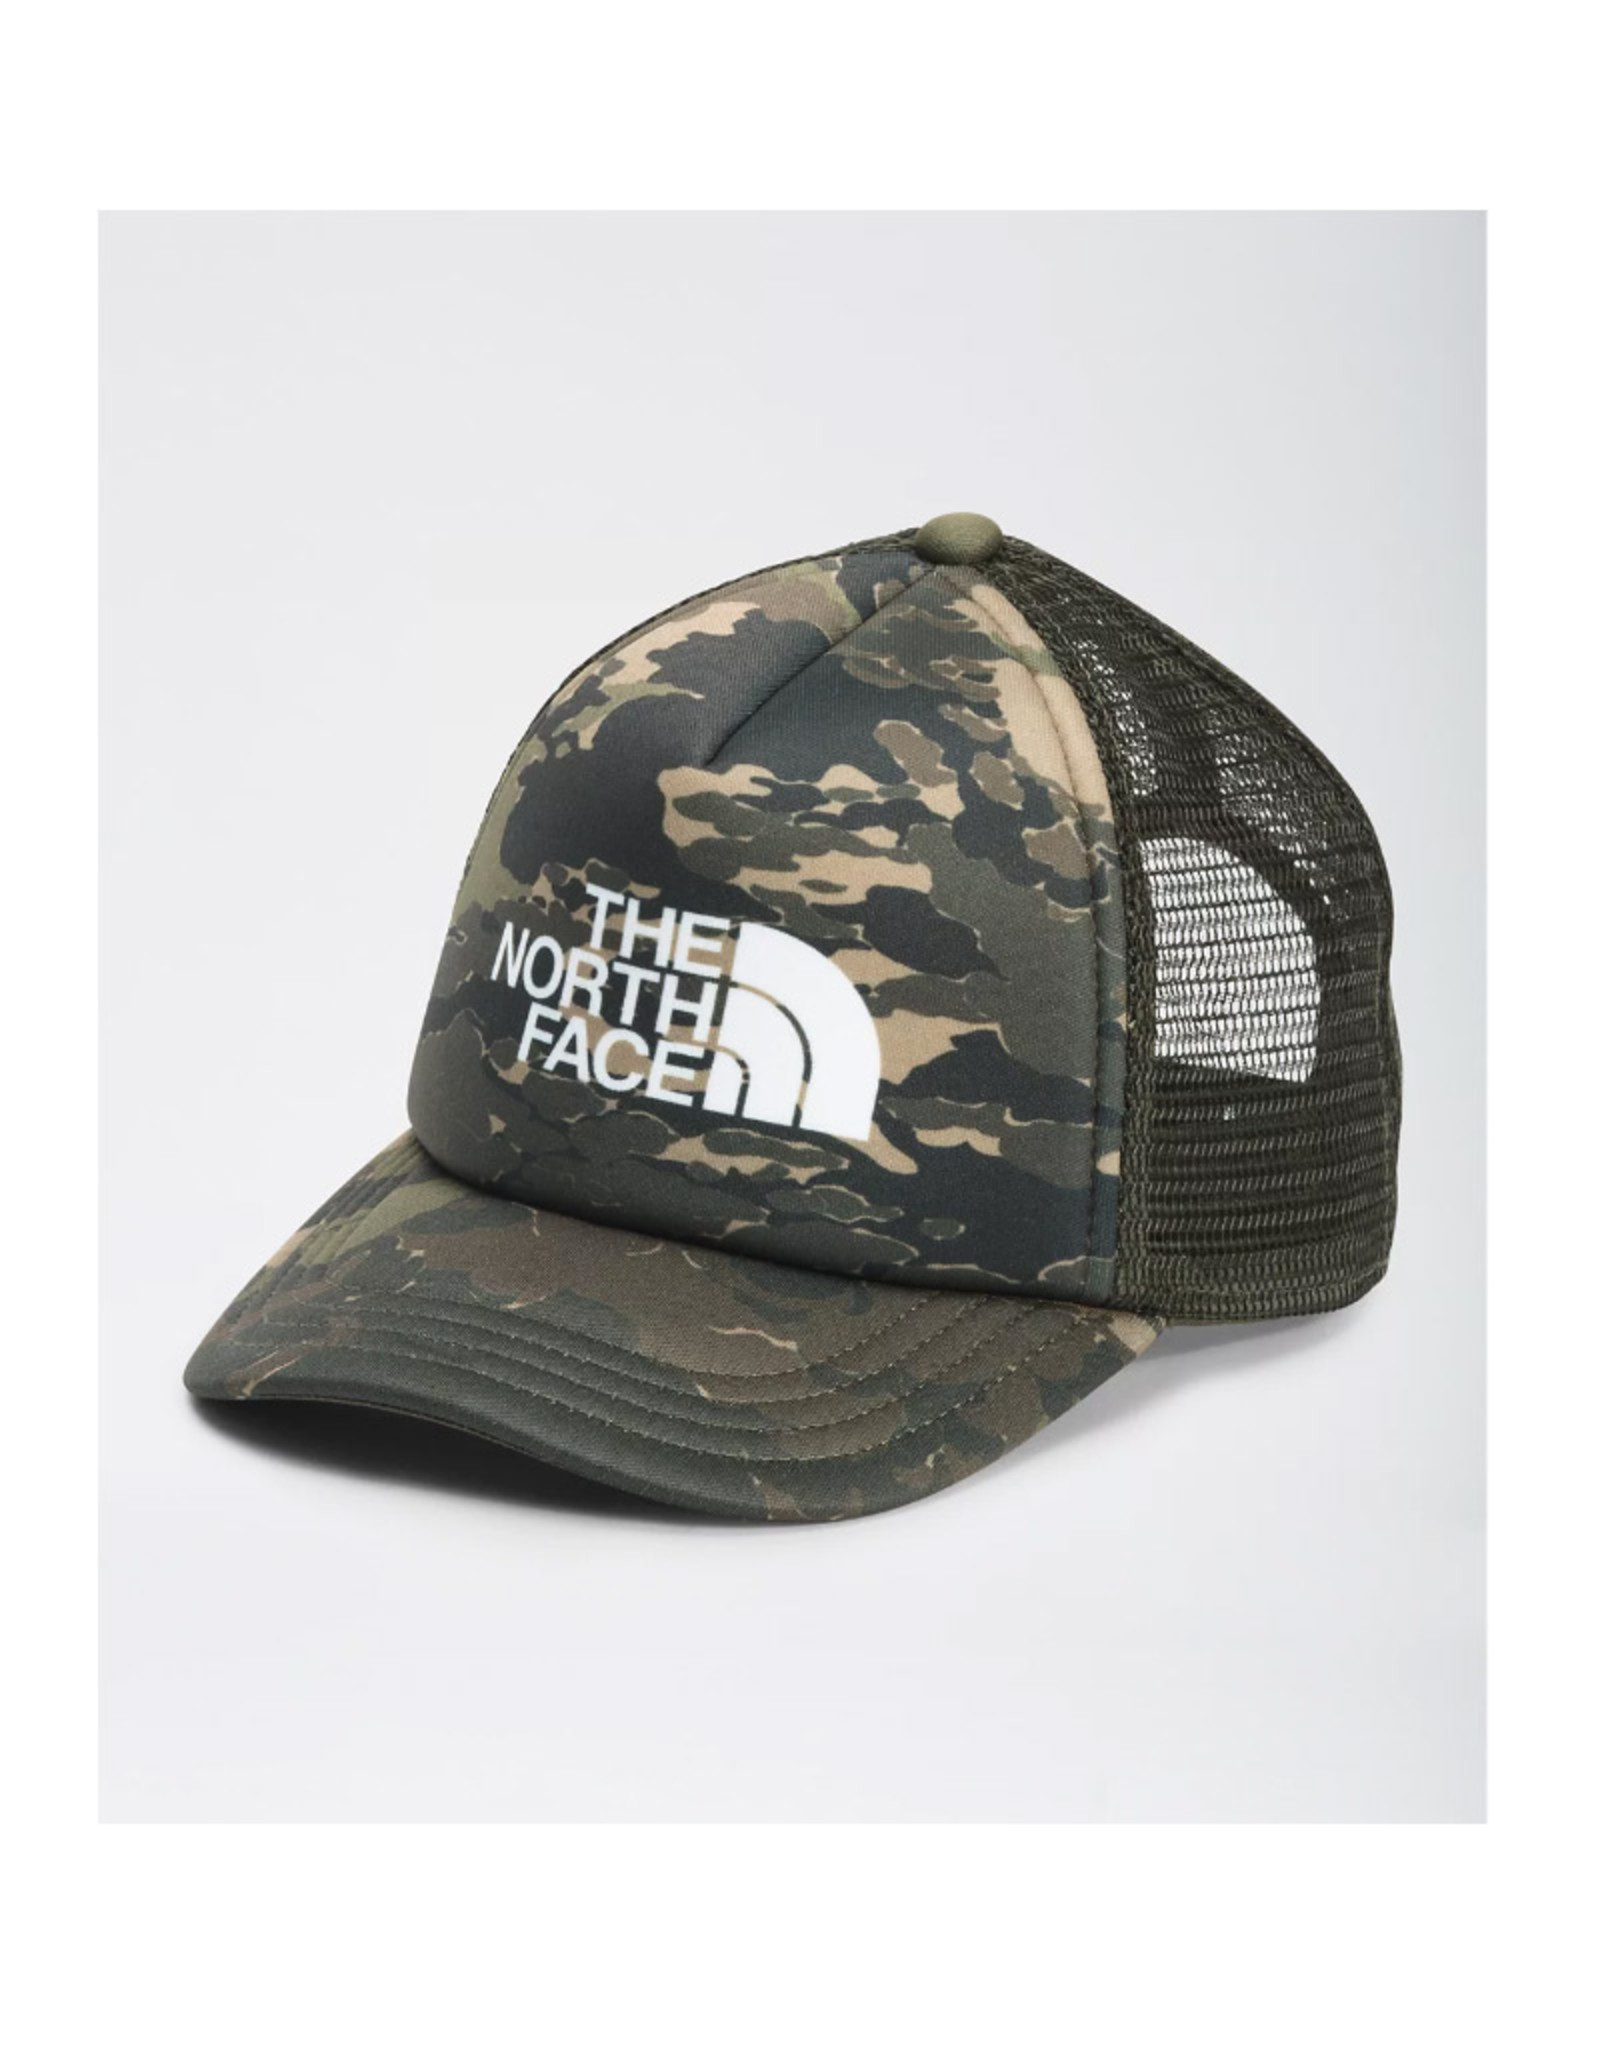 THE NORTH FACE Littles Trucker Hat